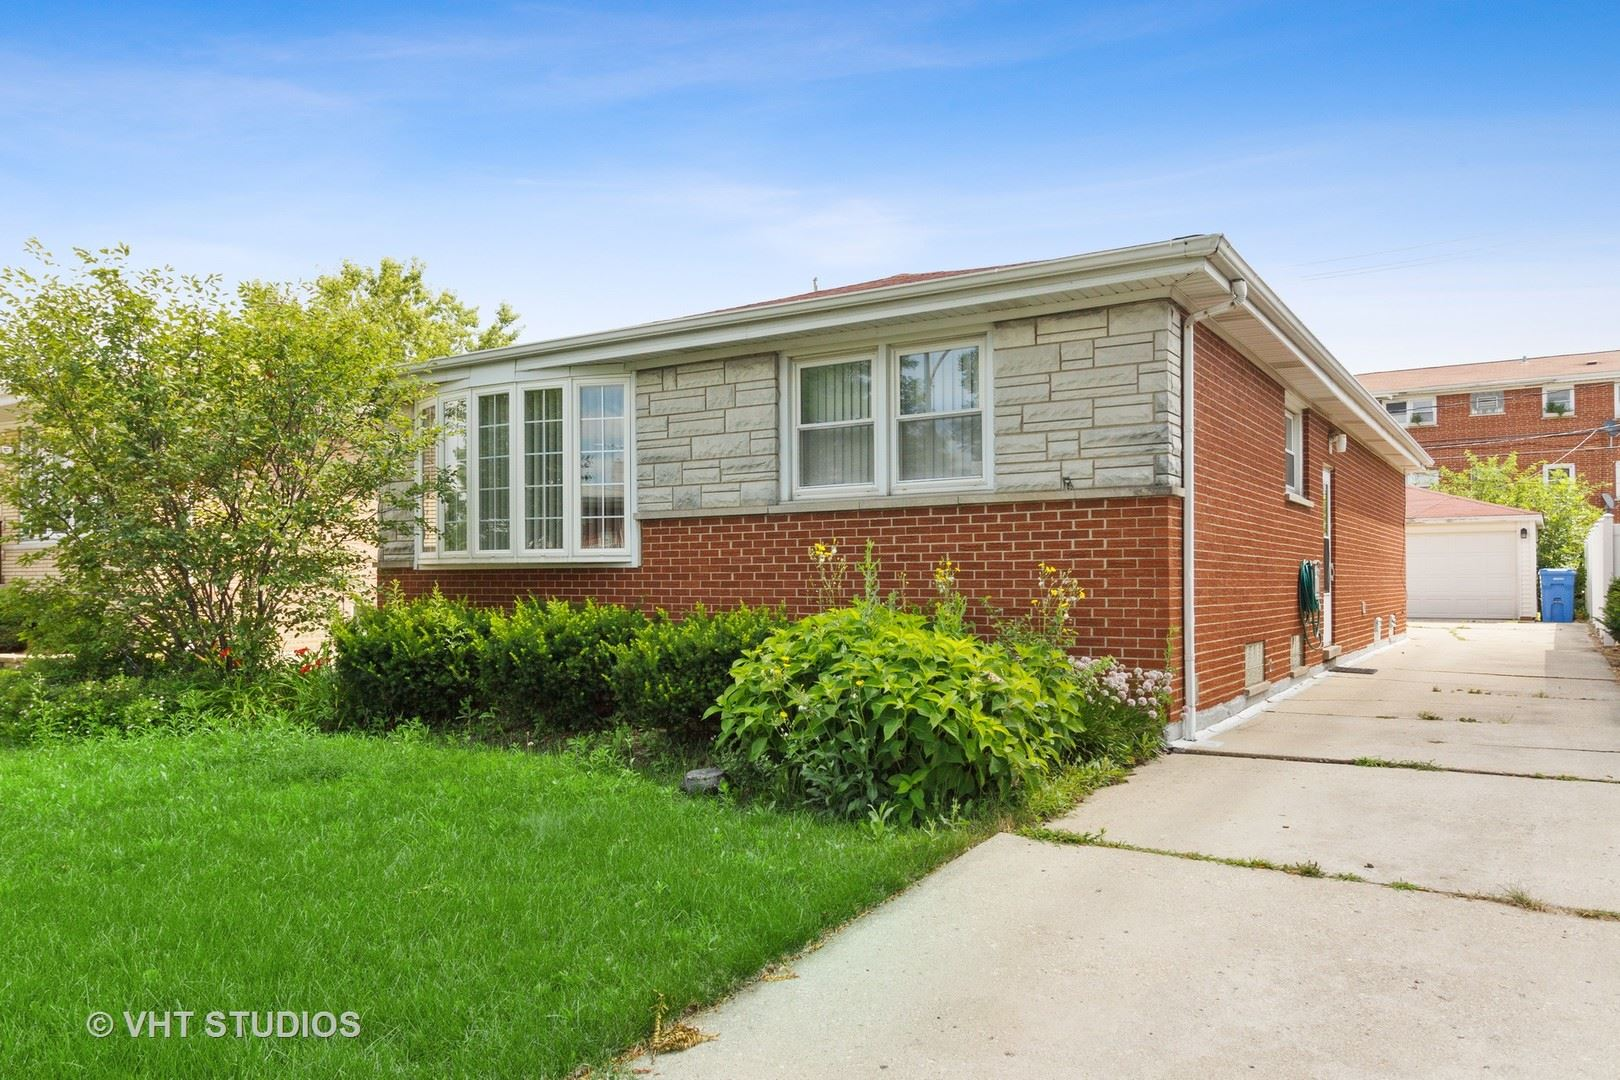 7931 S Komensky Avenue, Chicago, IL 60652 - #: 10787773